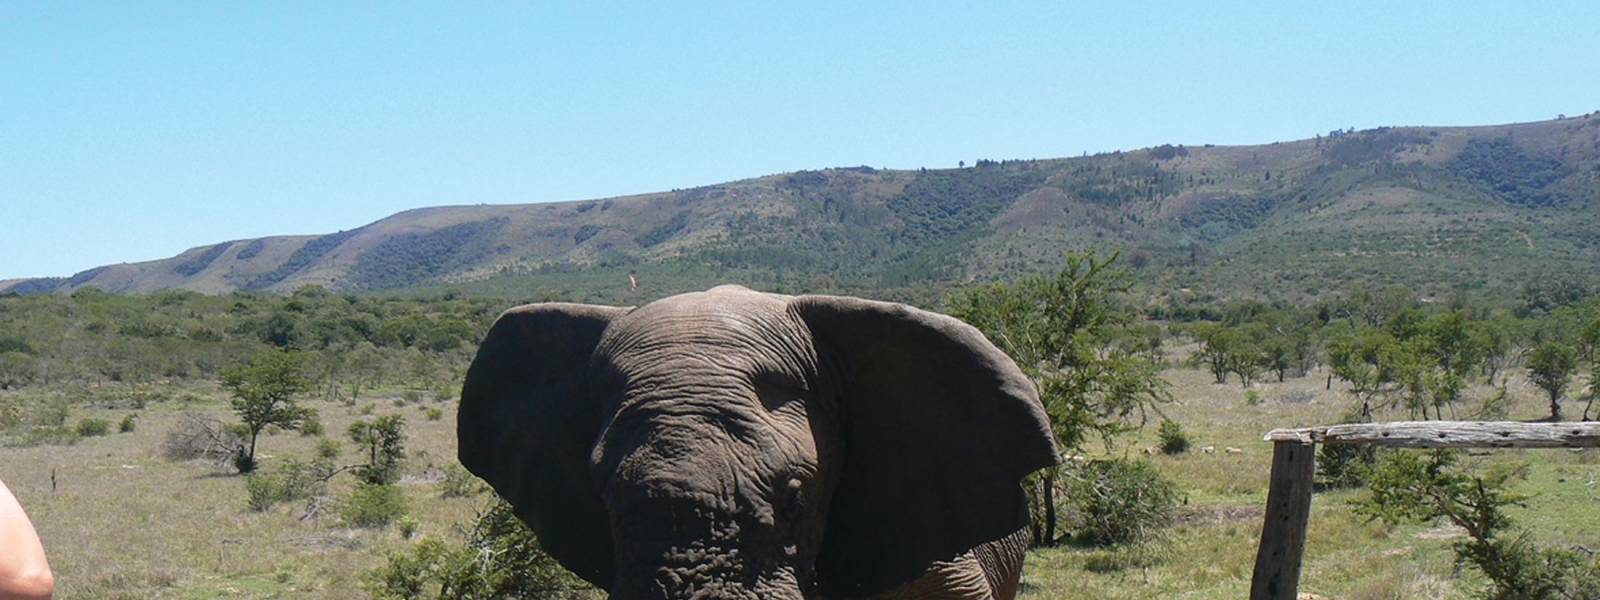 a large elephant and a mountain in the background